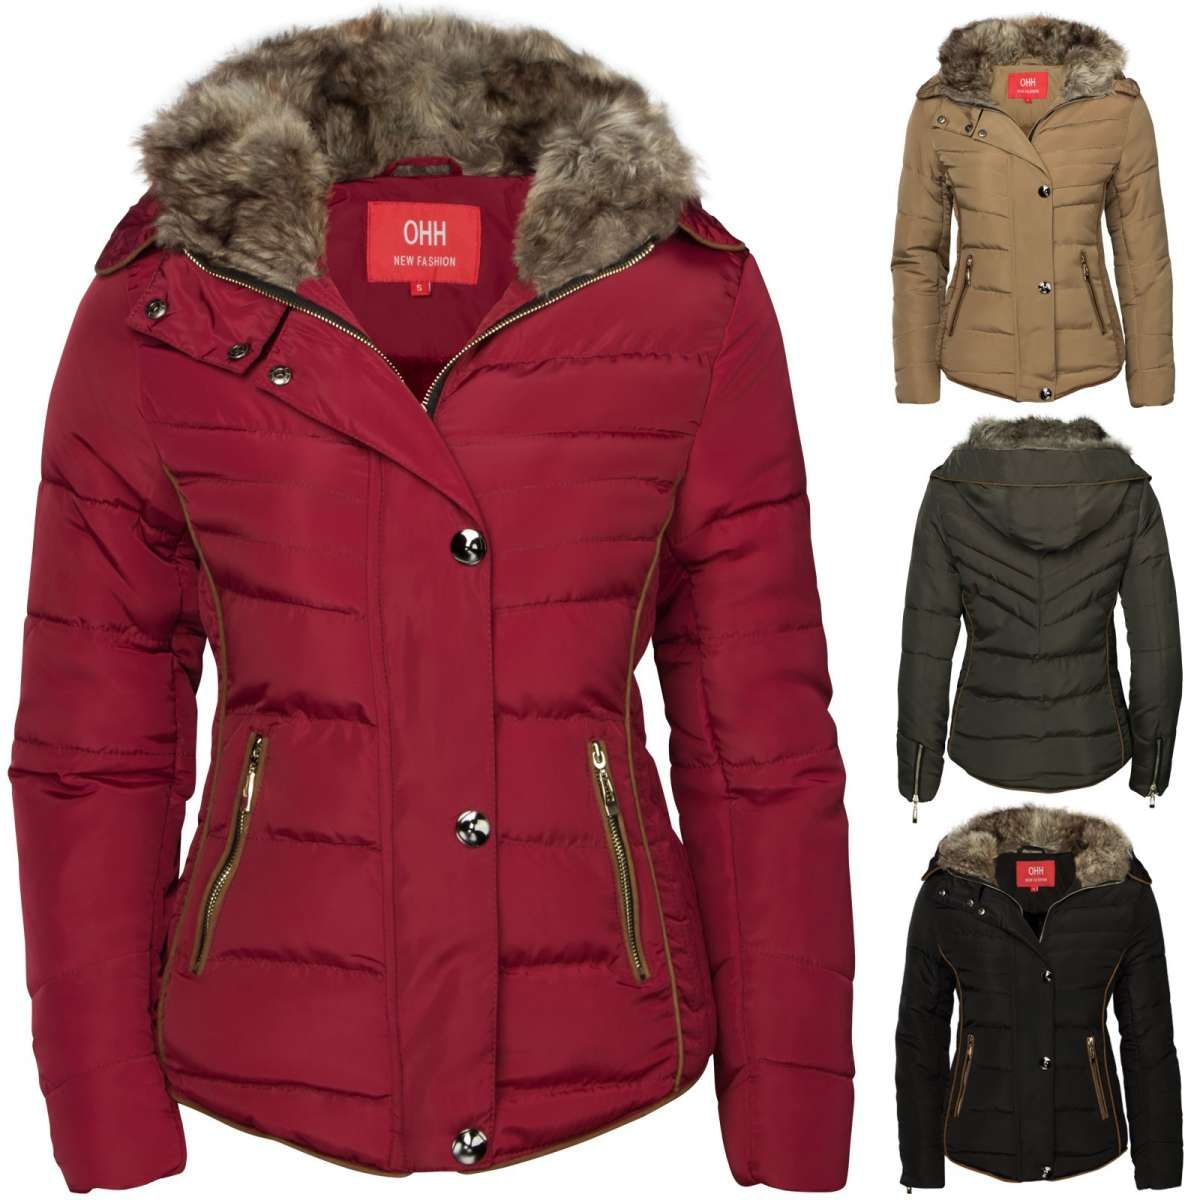 Daunen winterjacke damen mit fell